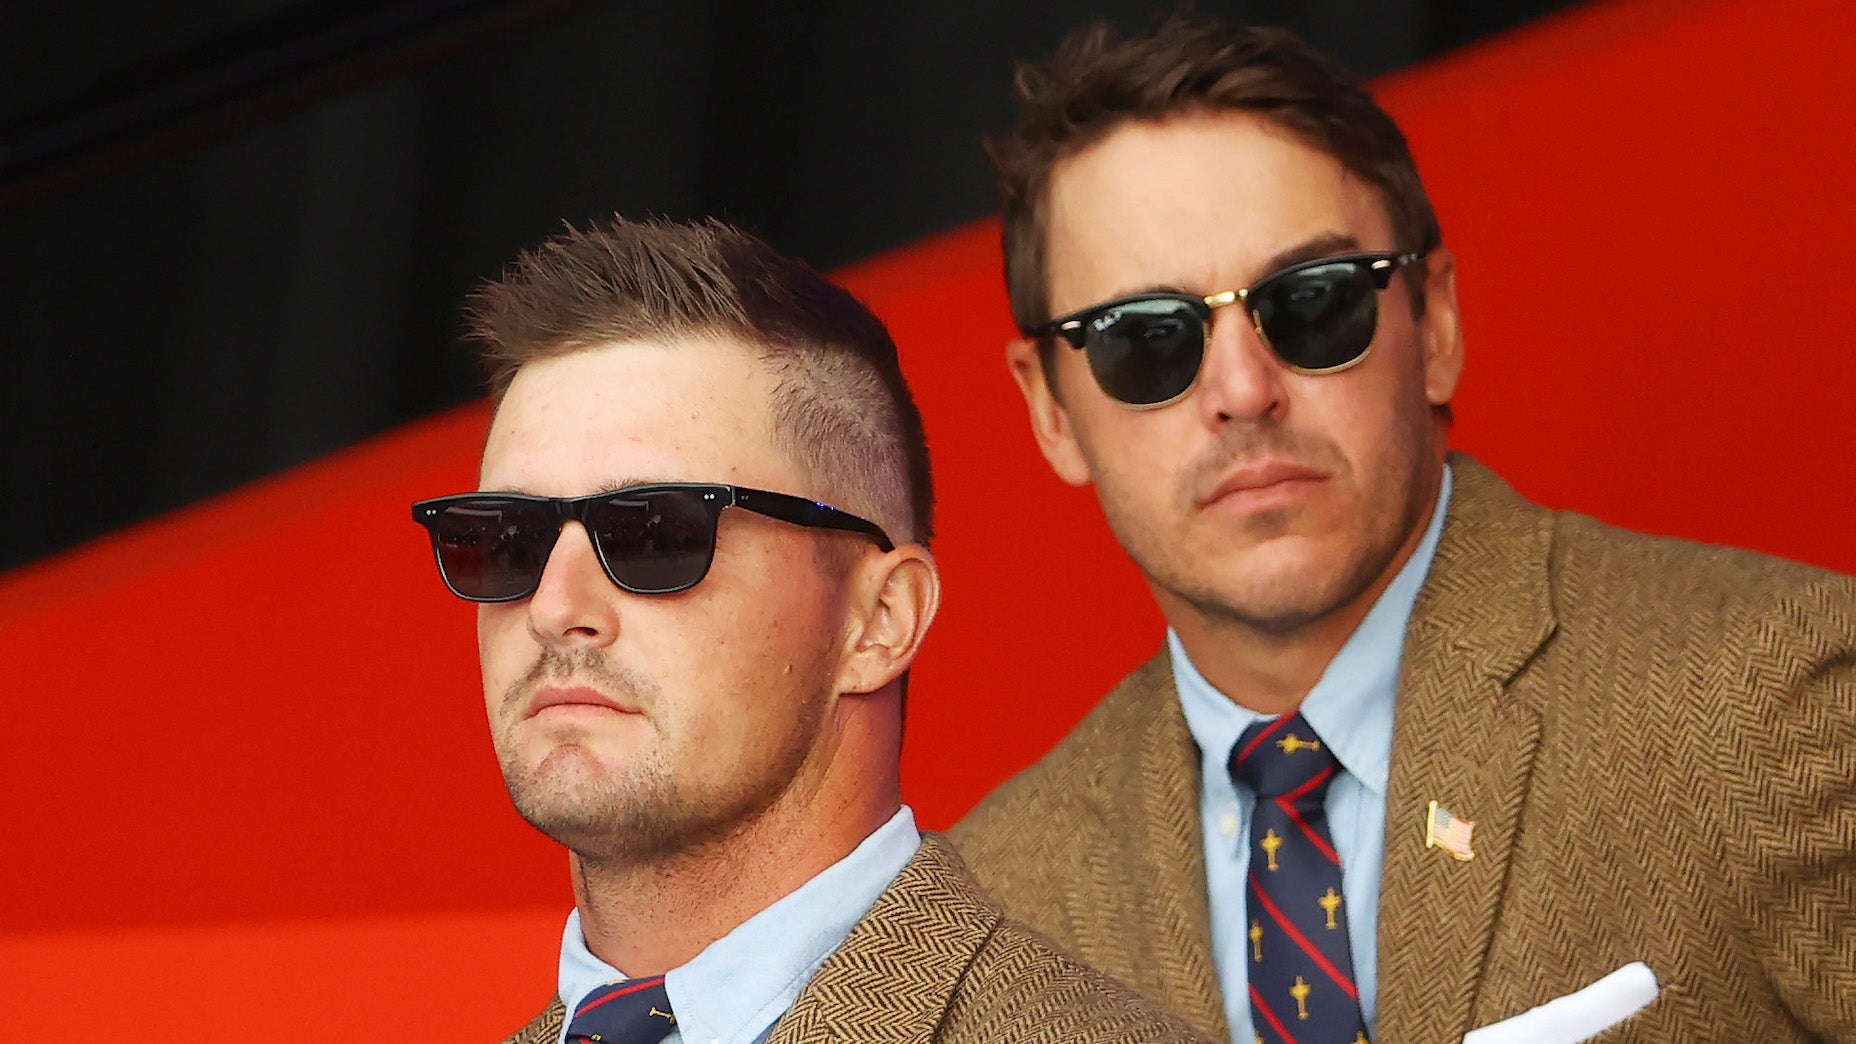 KOHLER, WISCONSIN - SEPTEMBER 23: Bryson DeChambeau of team United States and Brooks Koepka of team United States attend the opening ceremony for the 43rd Ryder Cup at Whistling Straits on September 23, 2021 in Kohler, Wisconsin. (Photo by Andrew Redington/Getty Images)